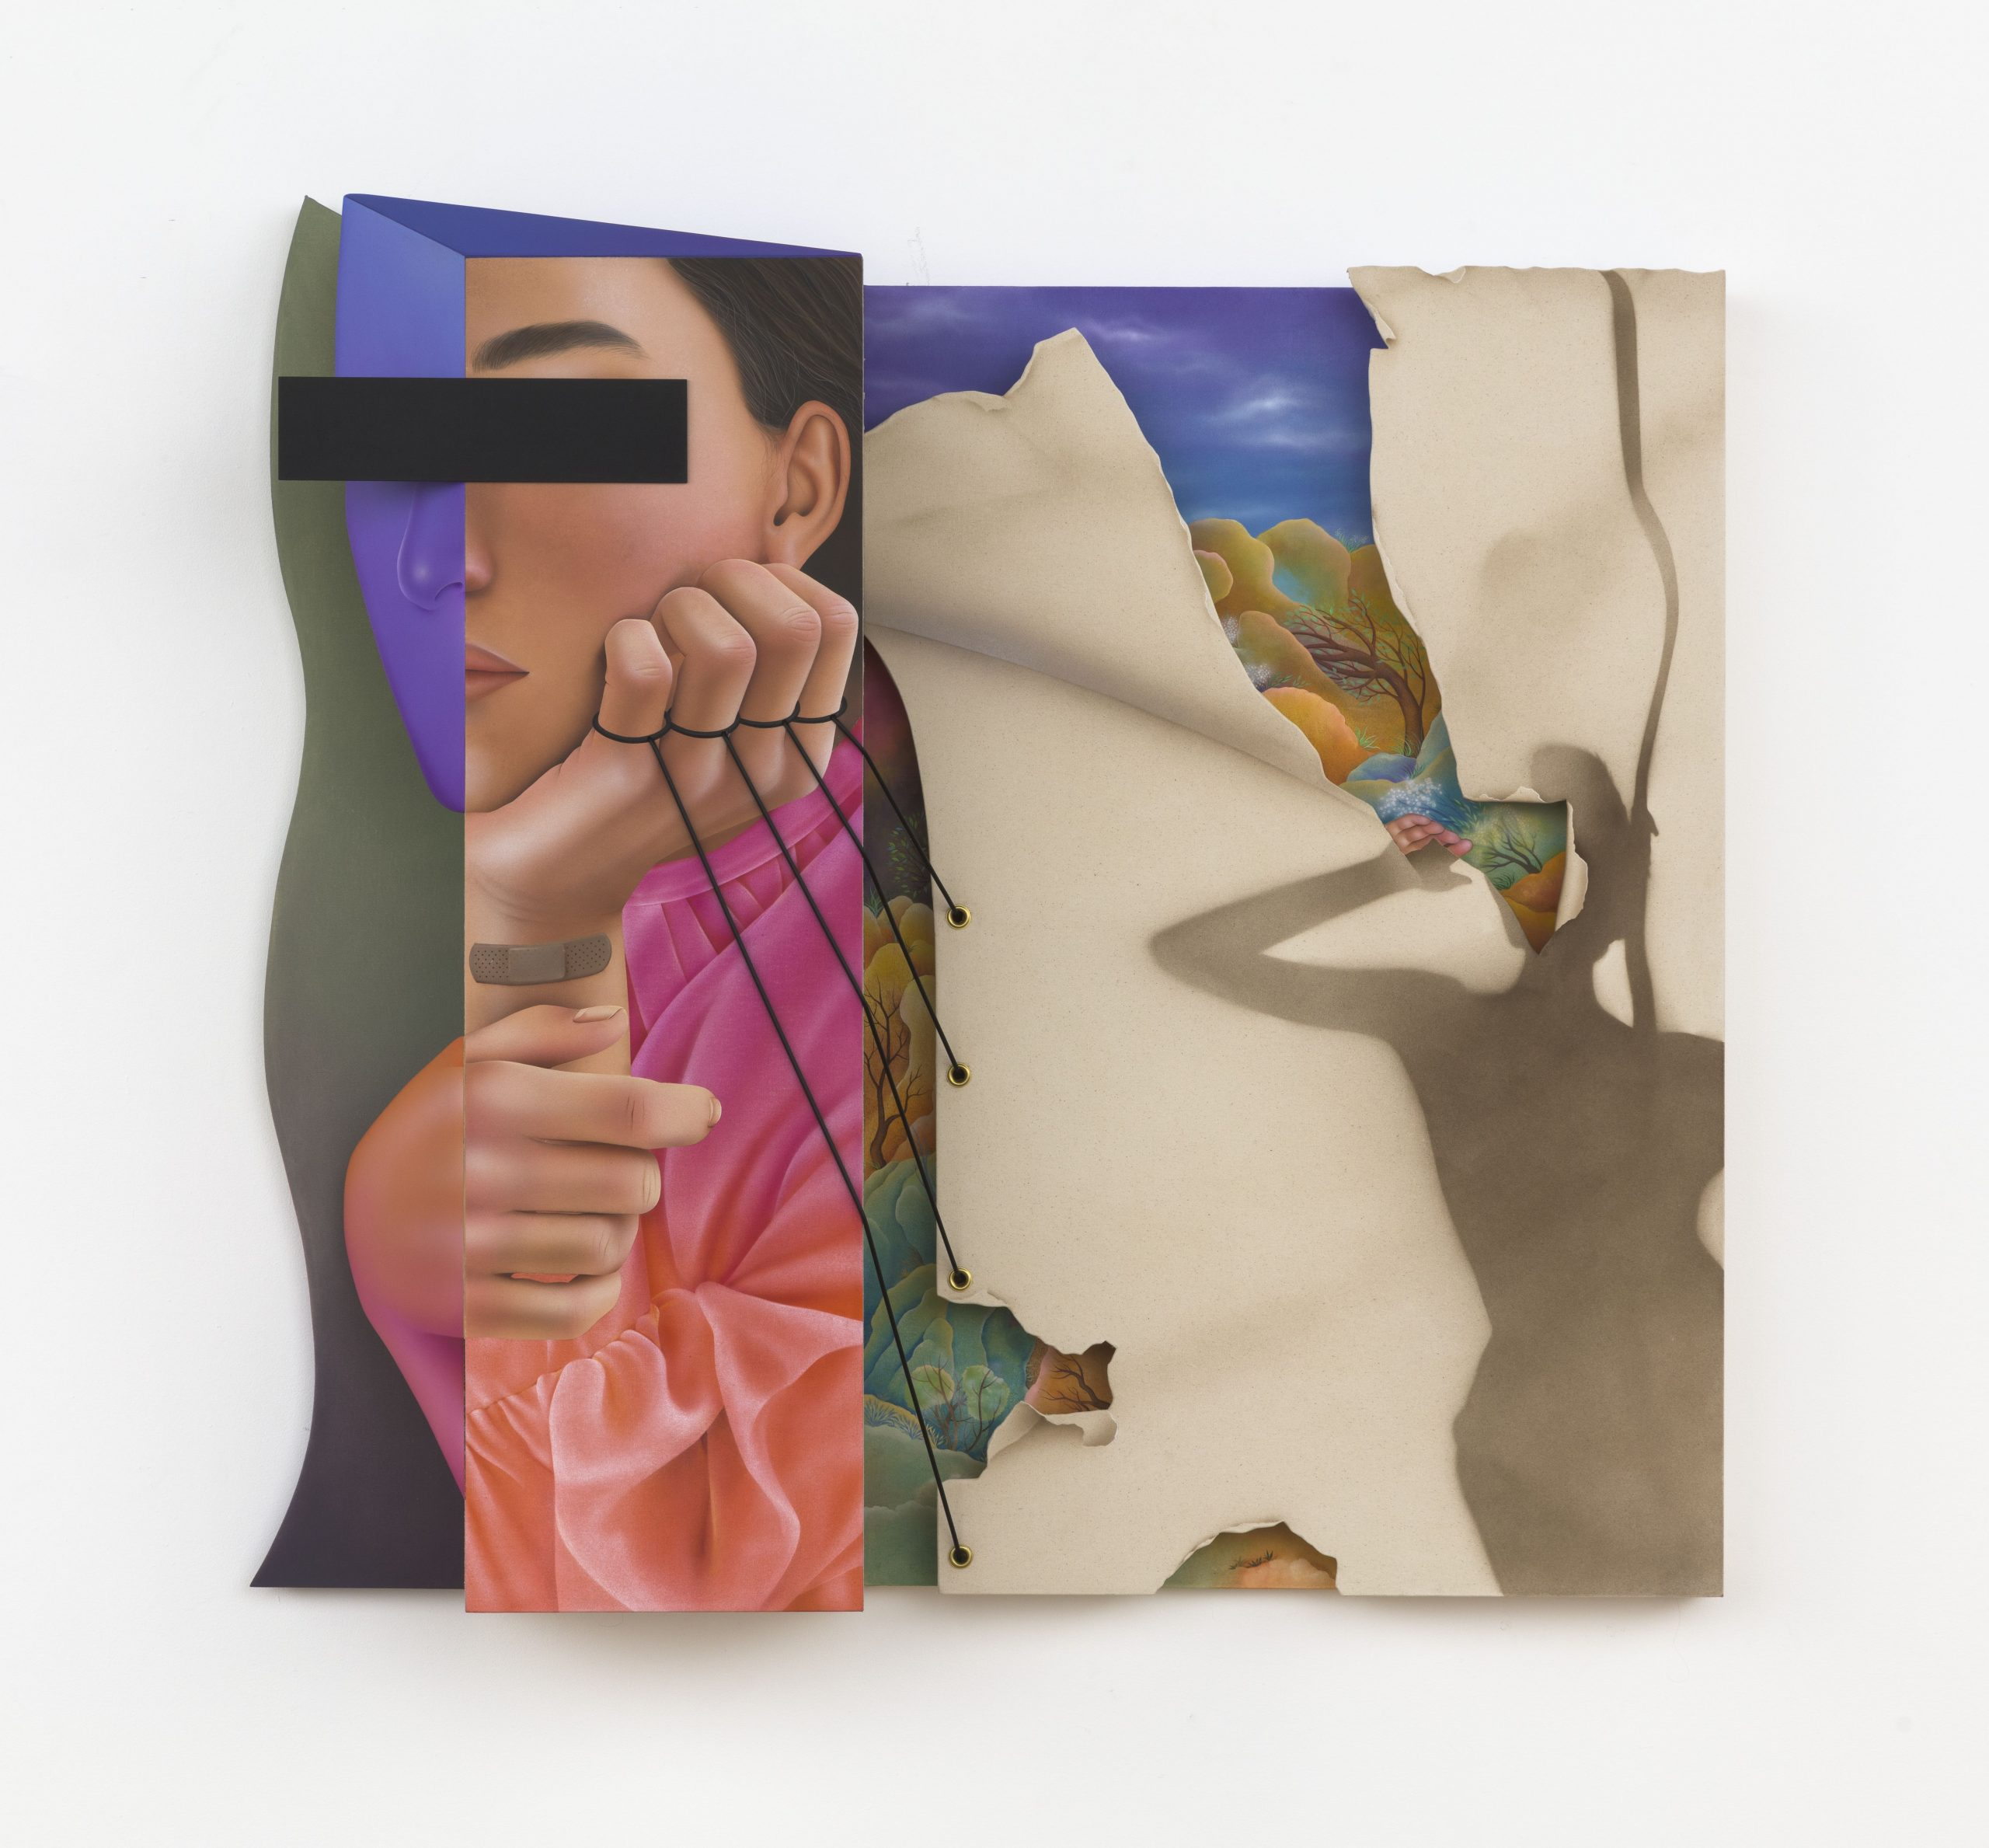 'I Felt in Between Places': Iranian Artist Arghavan Khosravi on Studying Art in the U.S., and Why She Paints Preoccupied Women